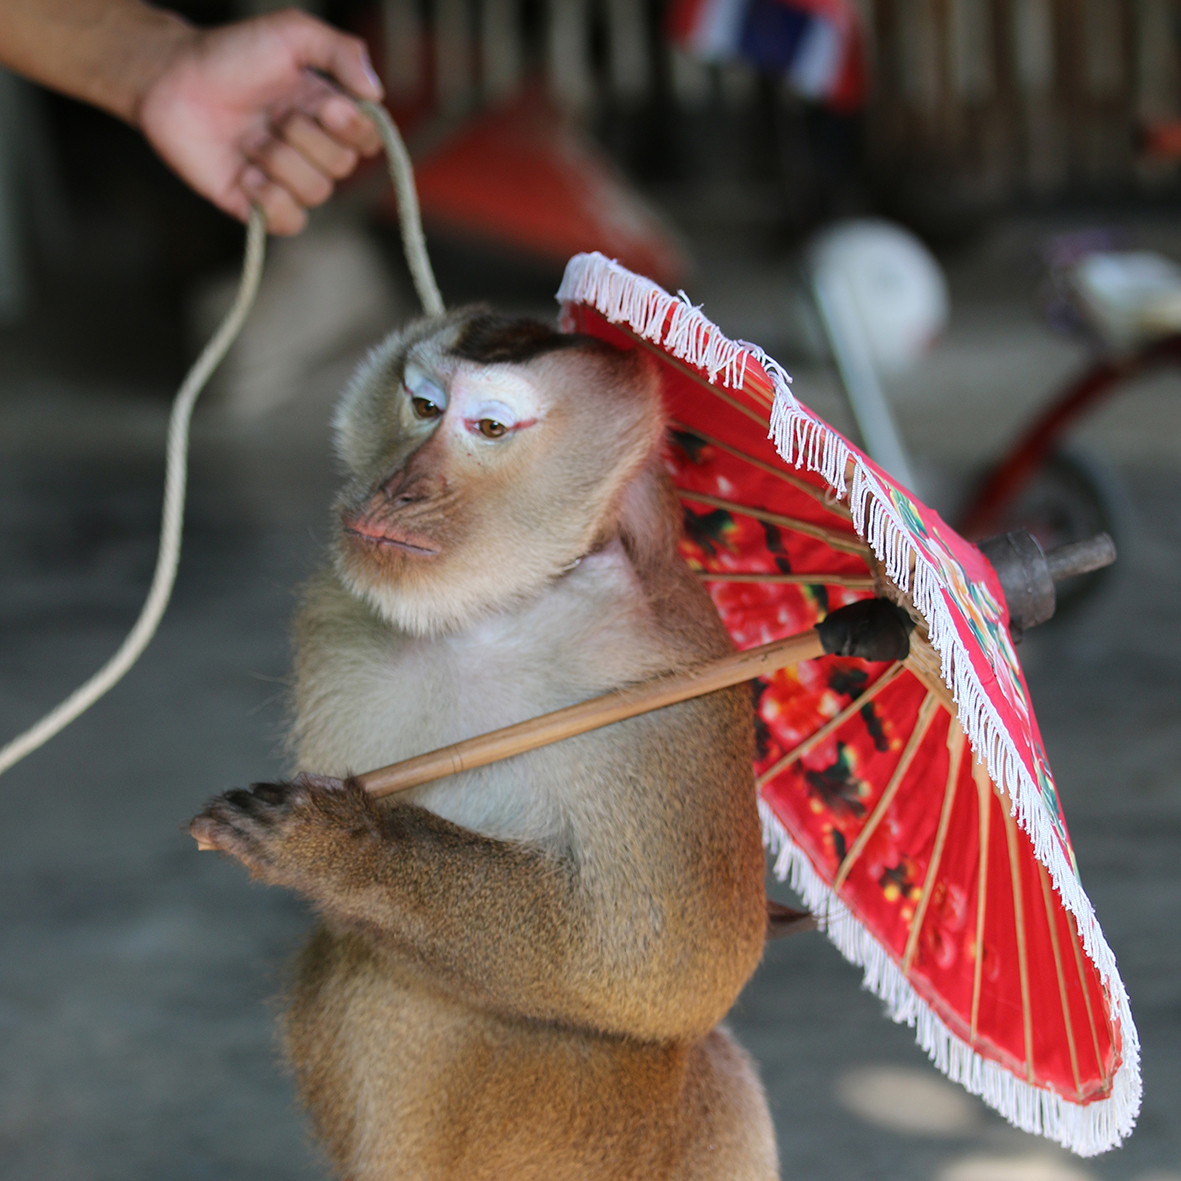 monkey on leash holding umbrella